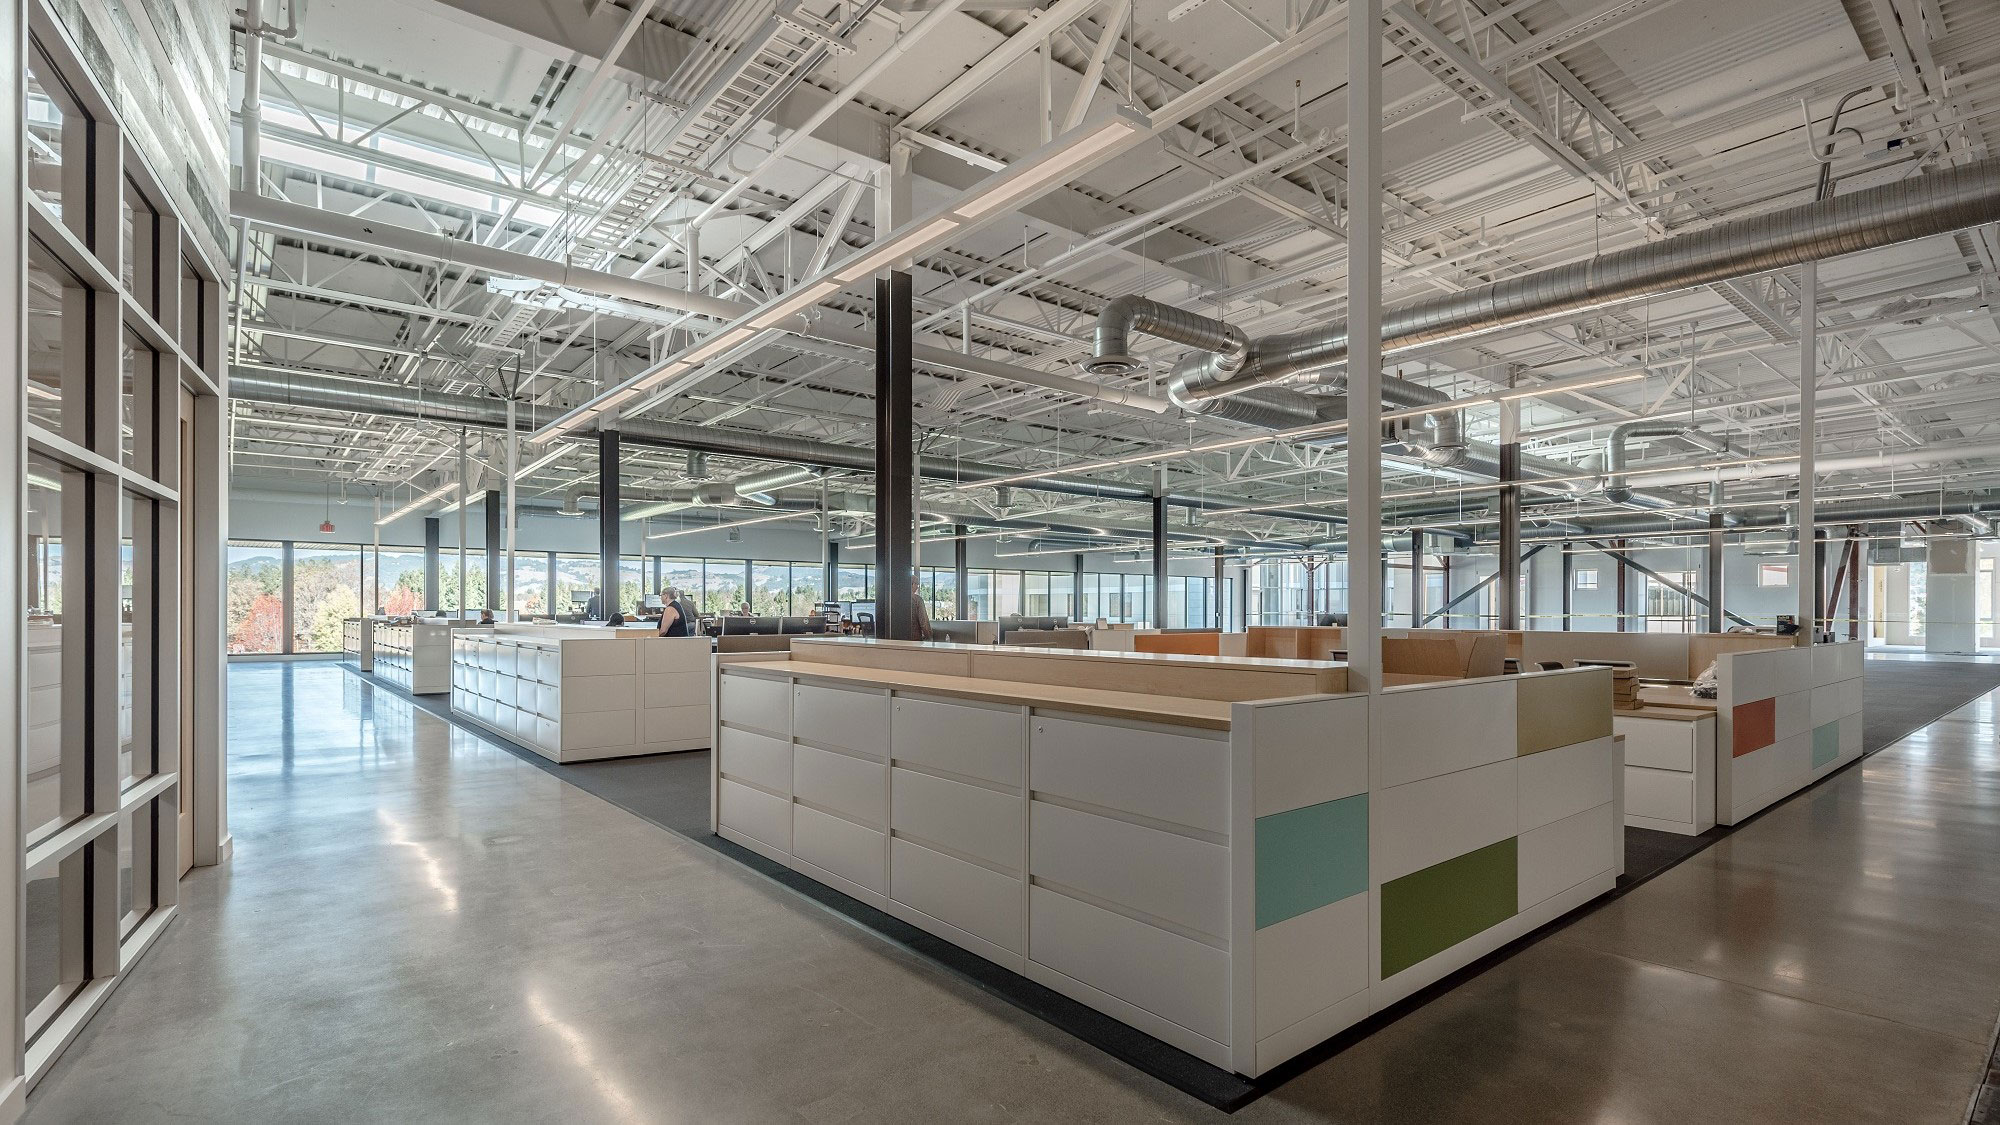 Tenant-Improvements-Rohnert-Park-TMI-2-6-Modern-office-design-with-polished-concrete-floor-and-industrial-ceiling